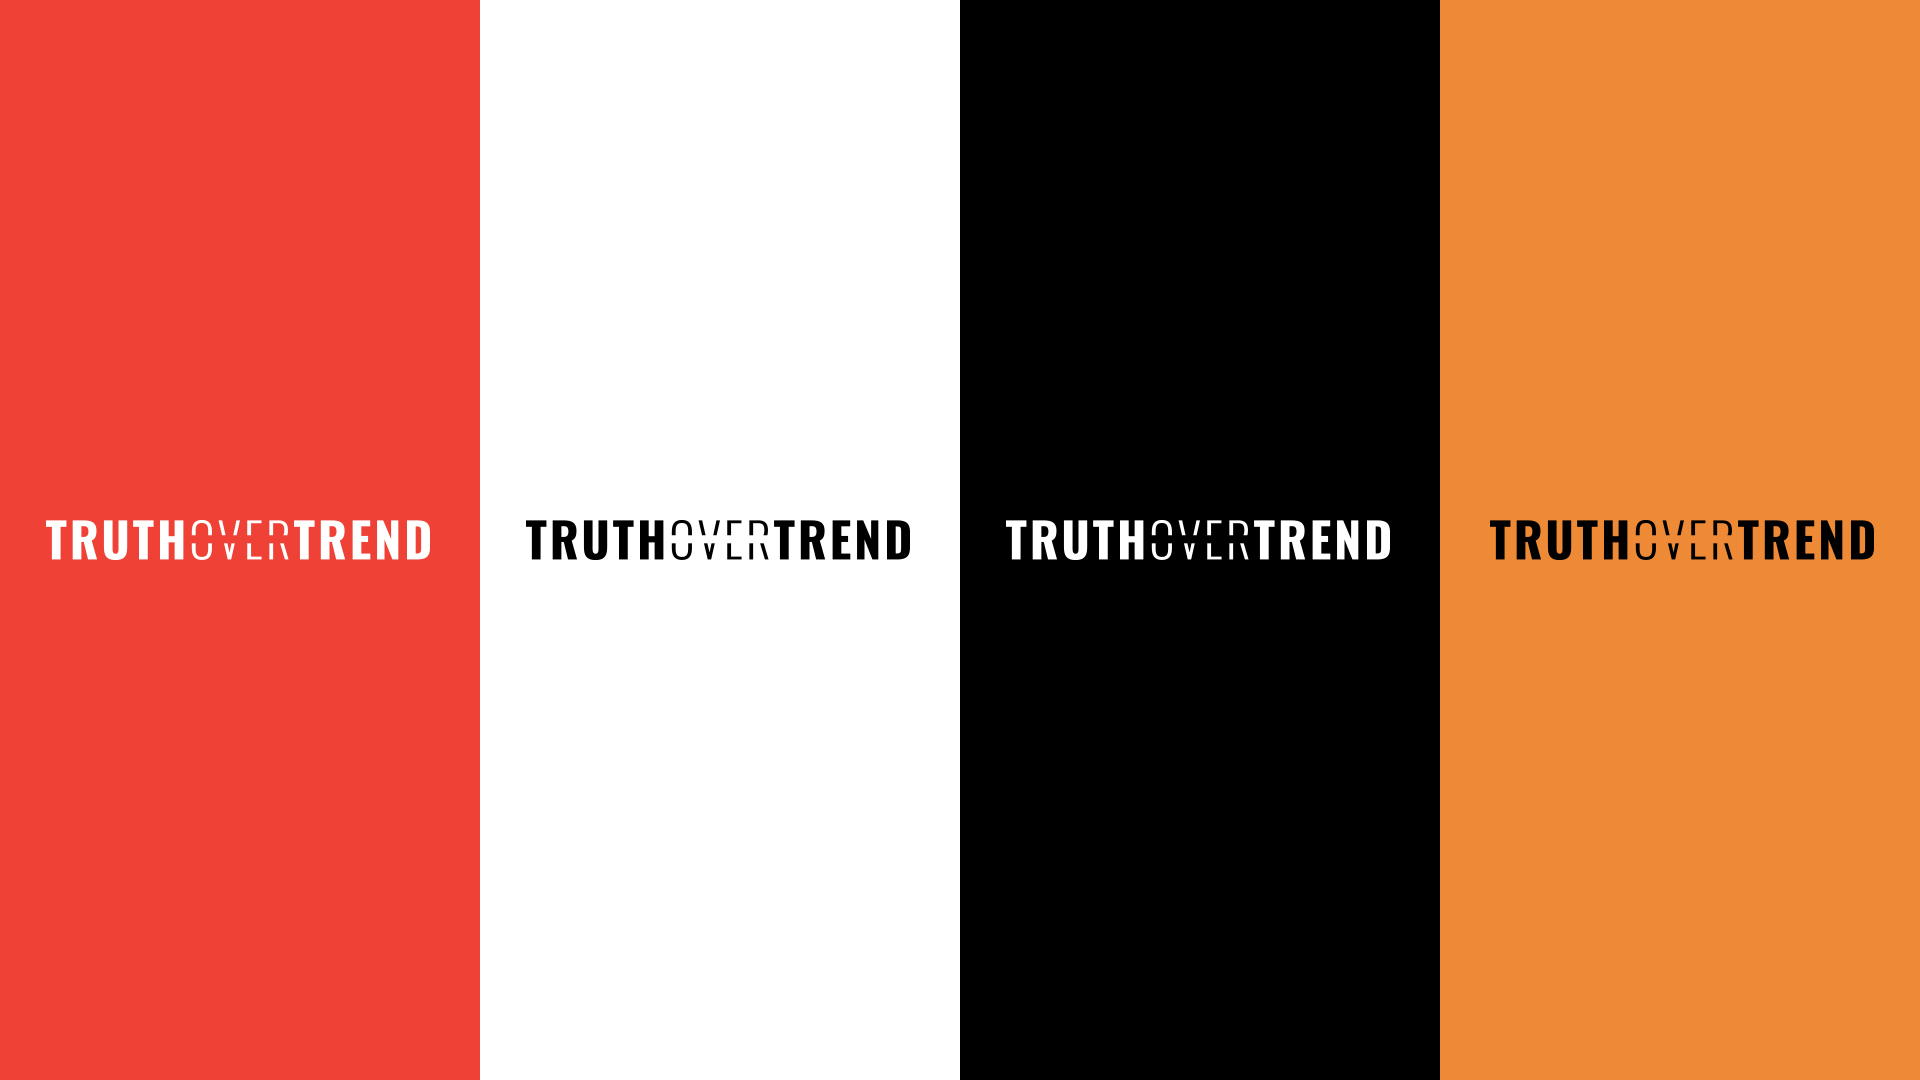 Truth Over Trend